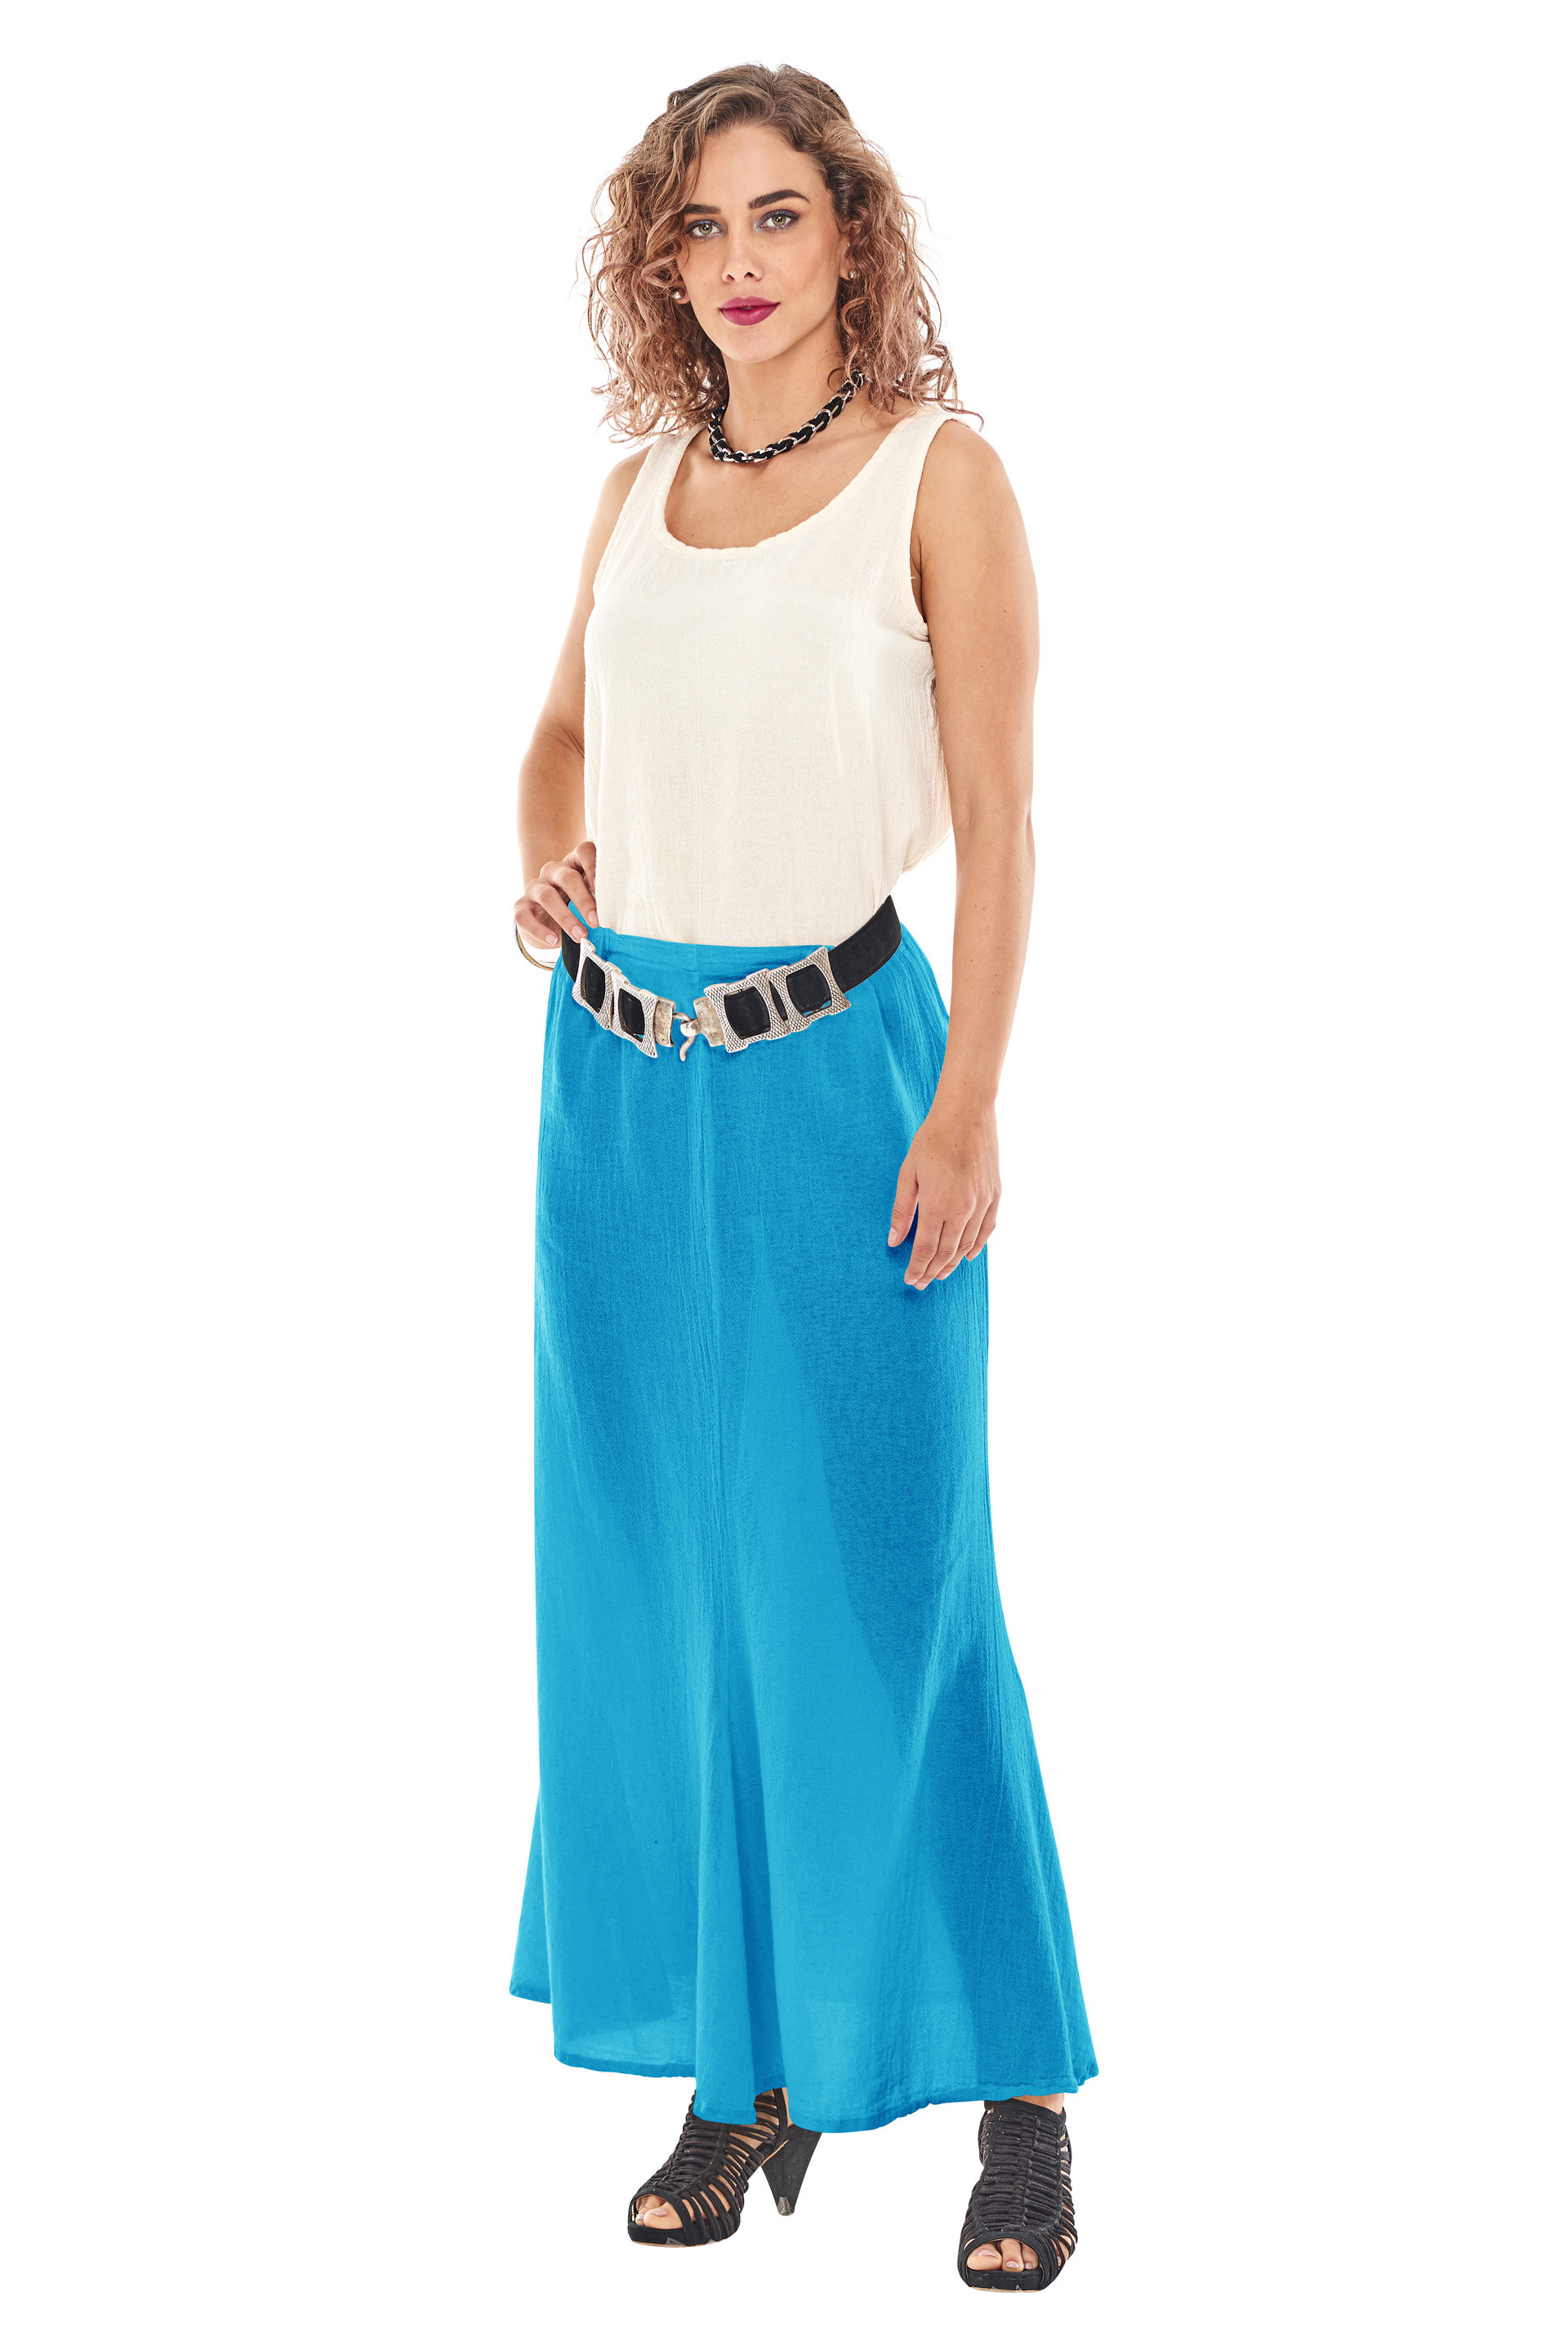 OMG - A popular, flared hemline cotton gauze skirt for a slimming look. Very flattering!